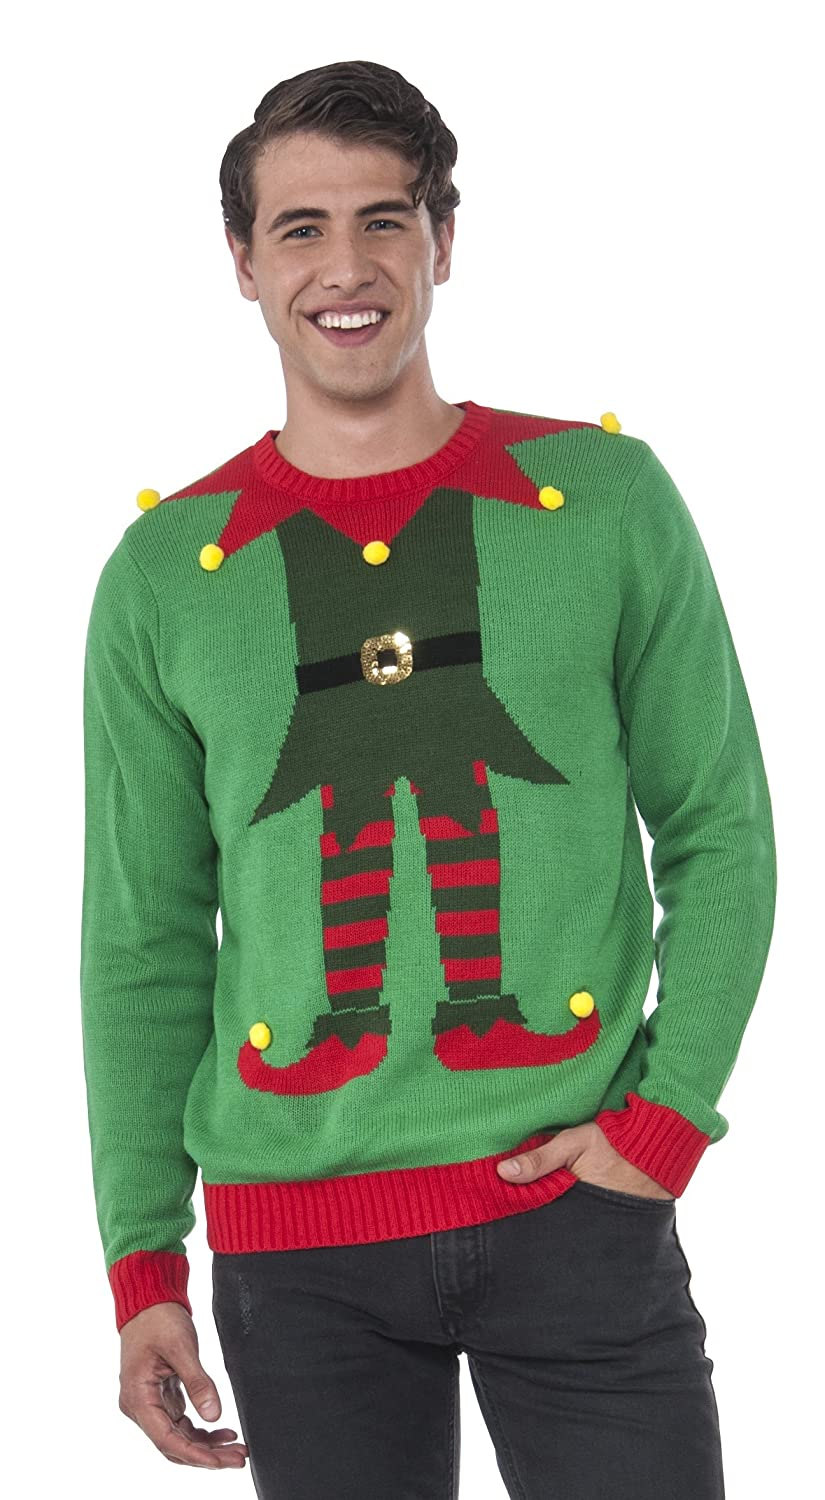 Amazon.com: Rubie's Men's Green Elf Ugly Christmas Sweater: Clothing